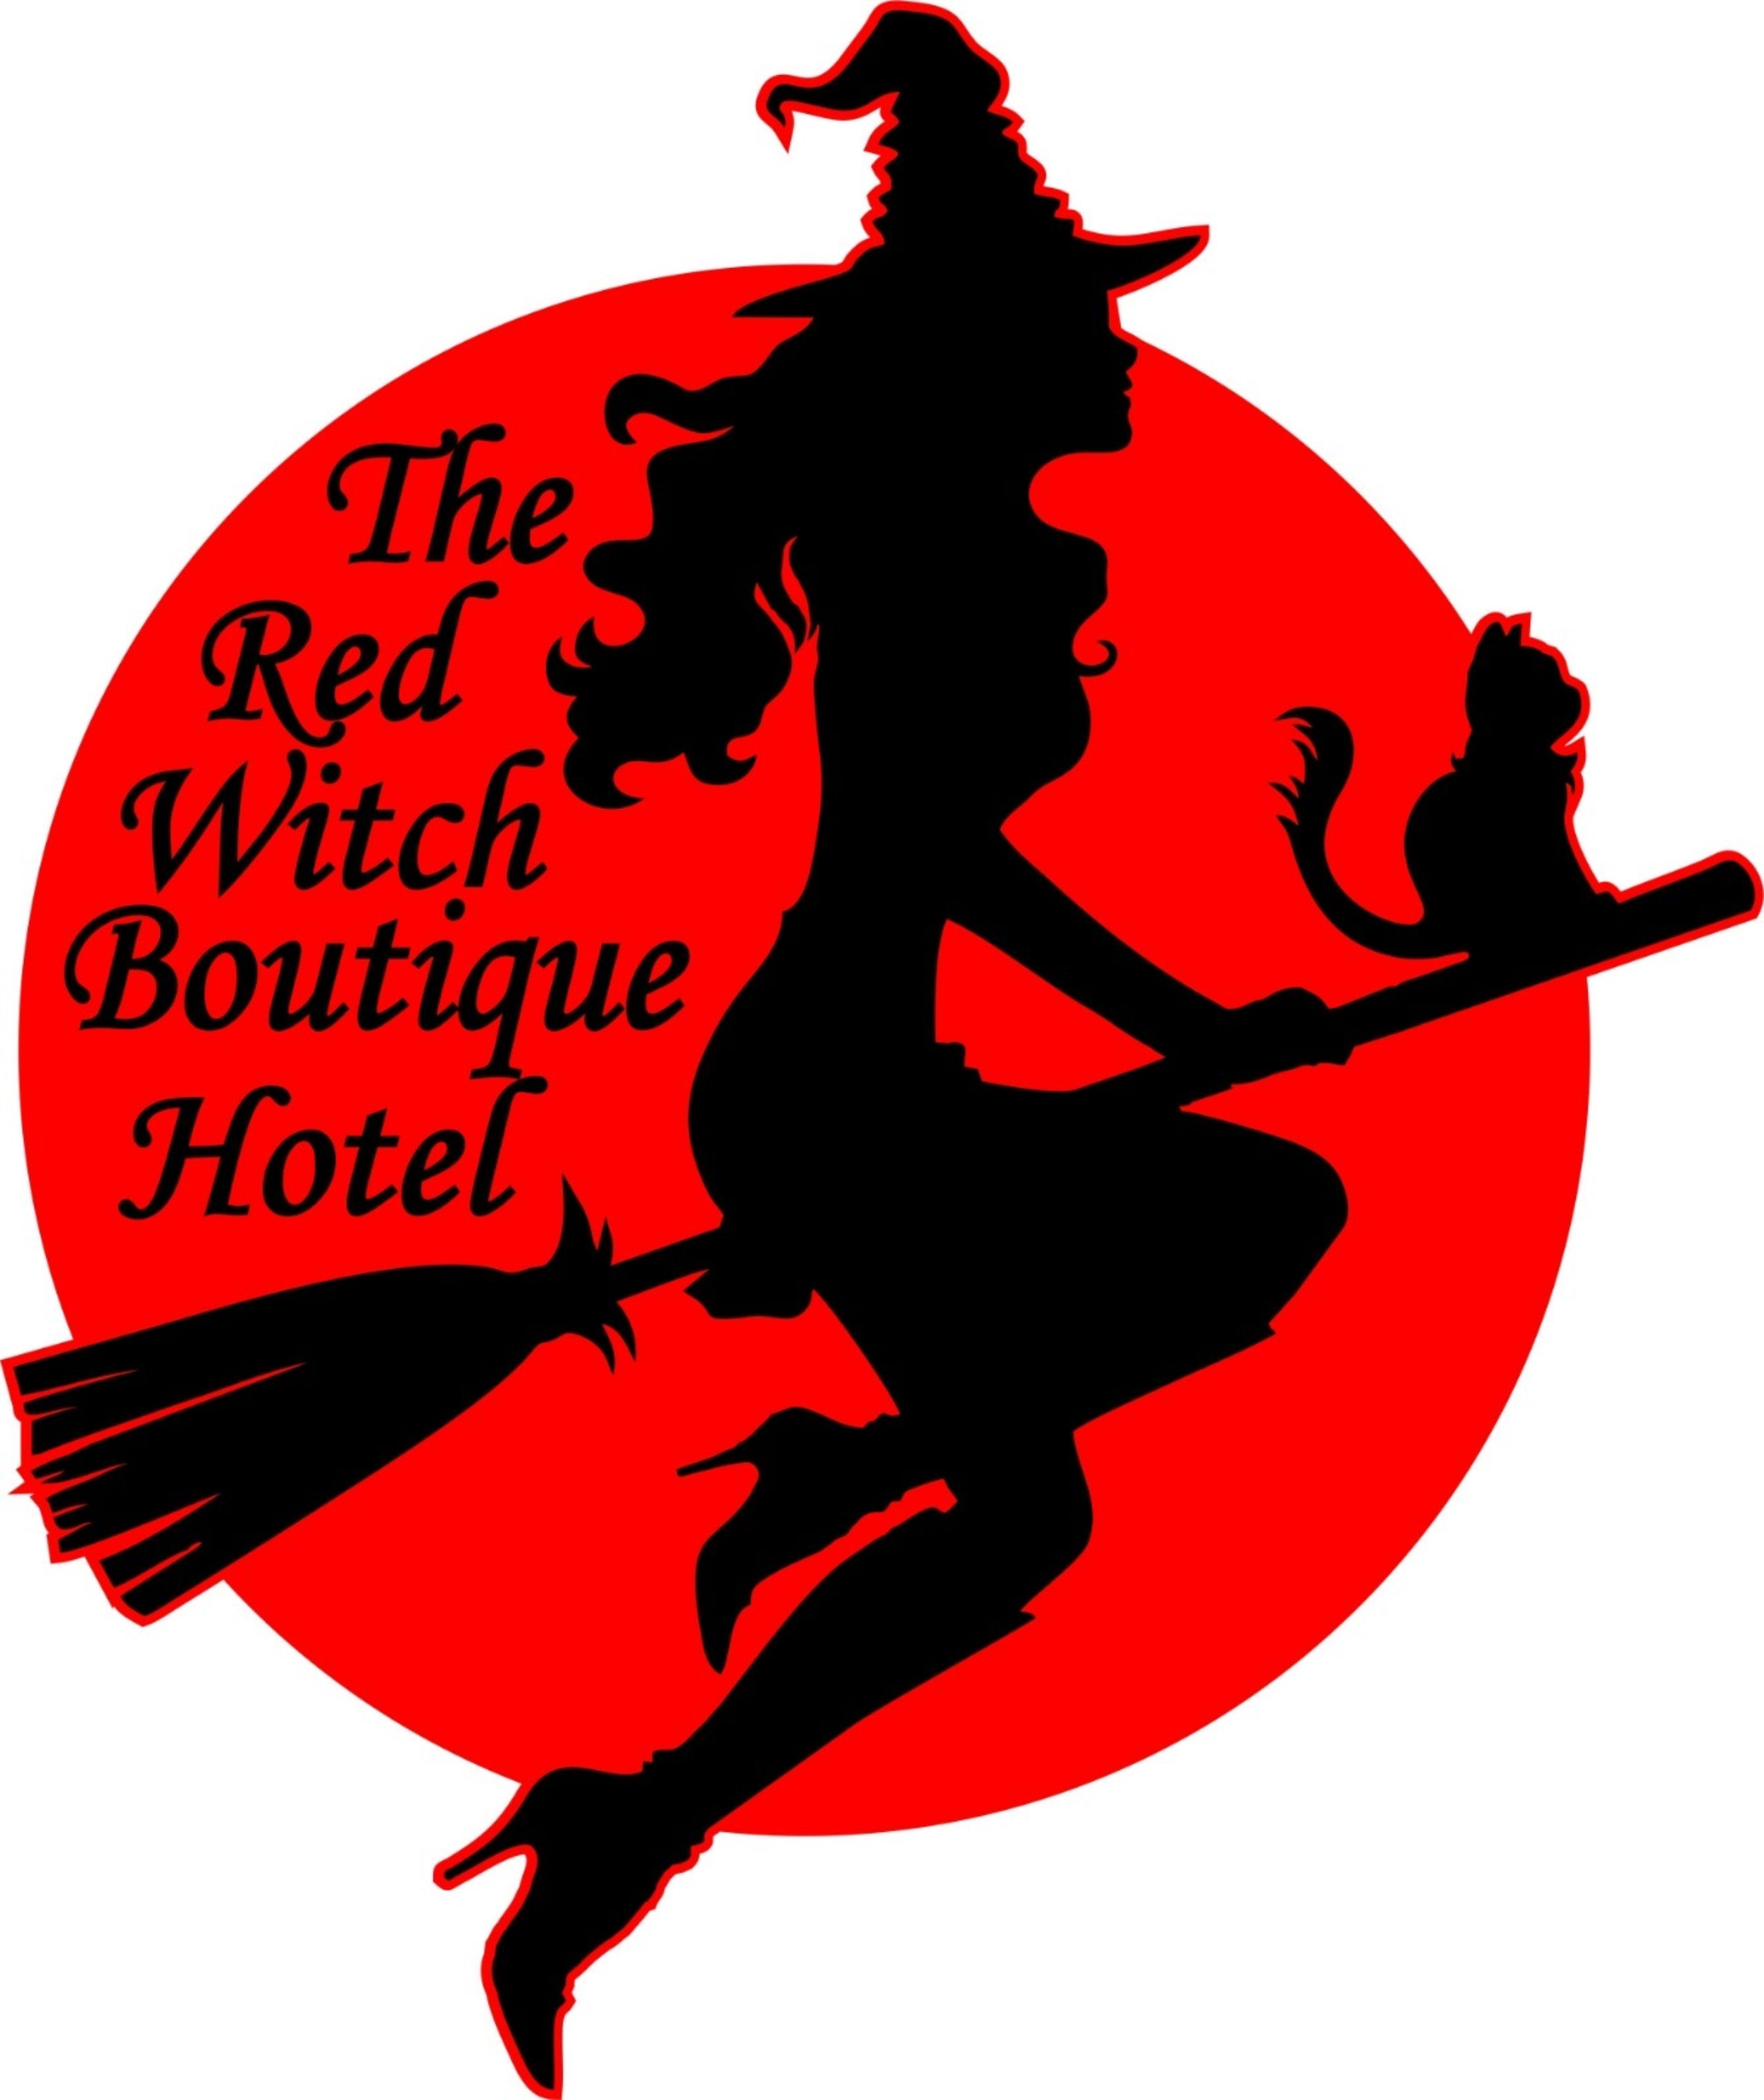 The Red Witch Hotel